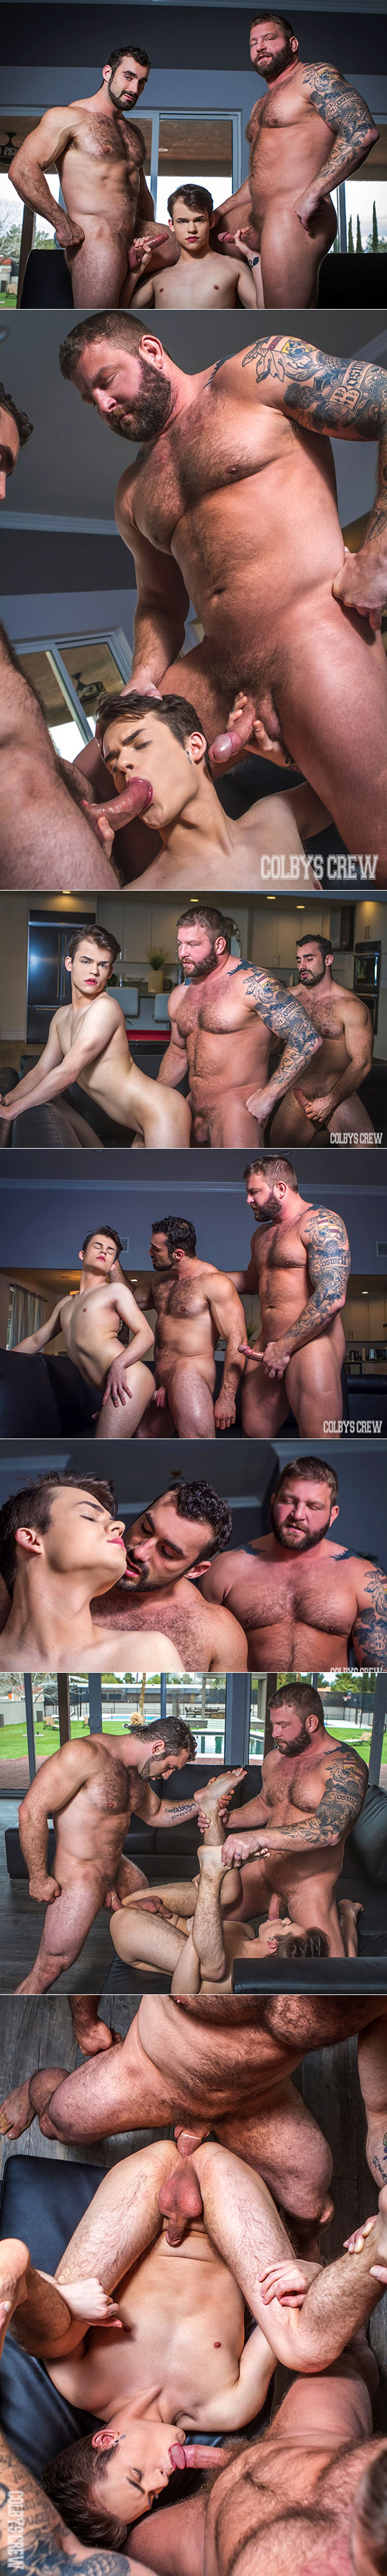 """Colby's Crew: Colby Jansen and Jaxton Wheeler tag team Abe Andrews in """"Don't Tell Mom, Part 3"""""""